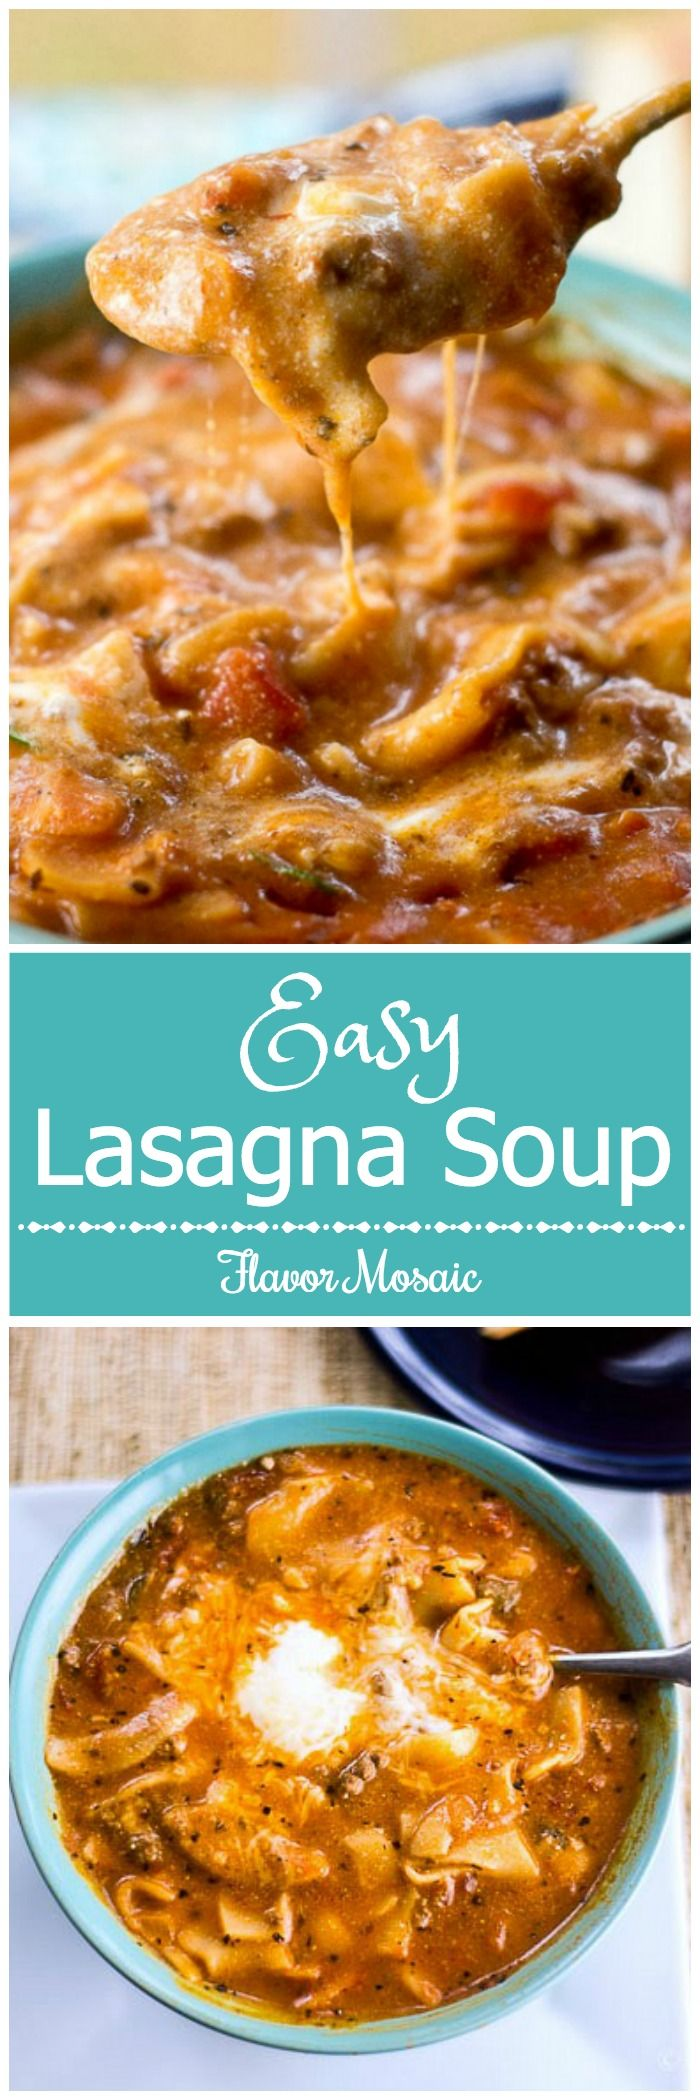 Easy Lasagna Soup Recipe via @flavormosaic  -  food Italian ideas dinner (Shredded Chicken Chili)